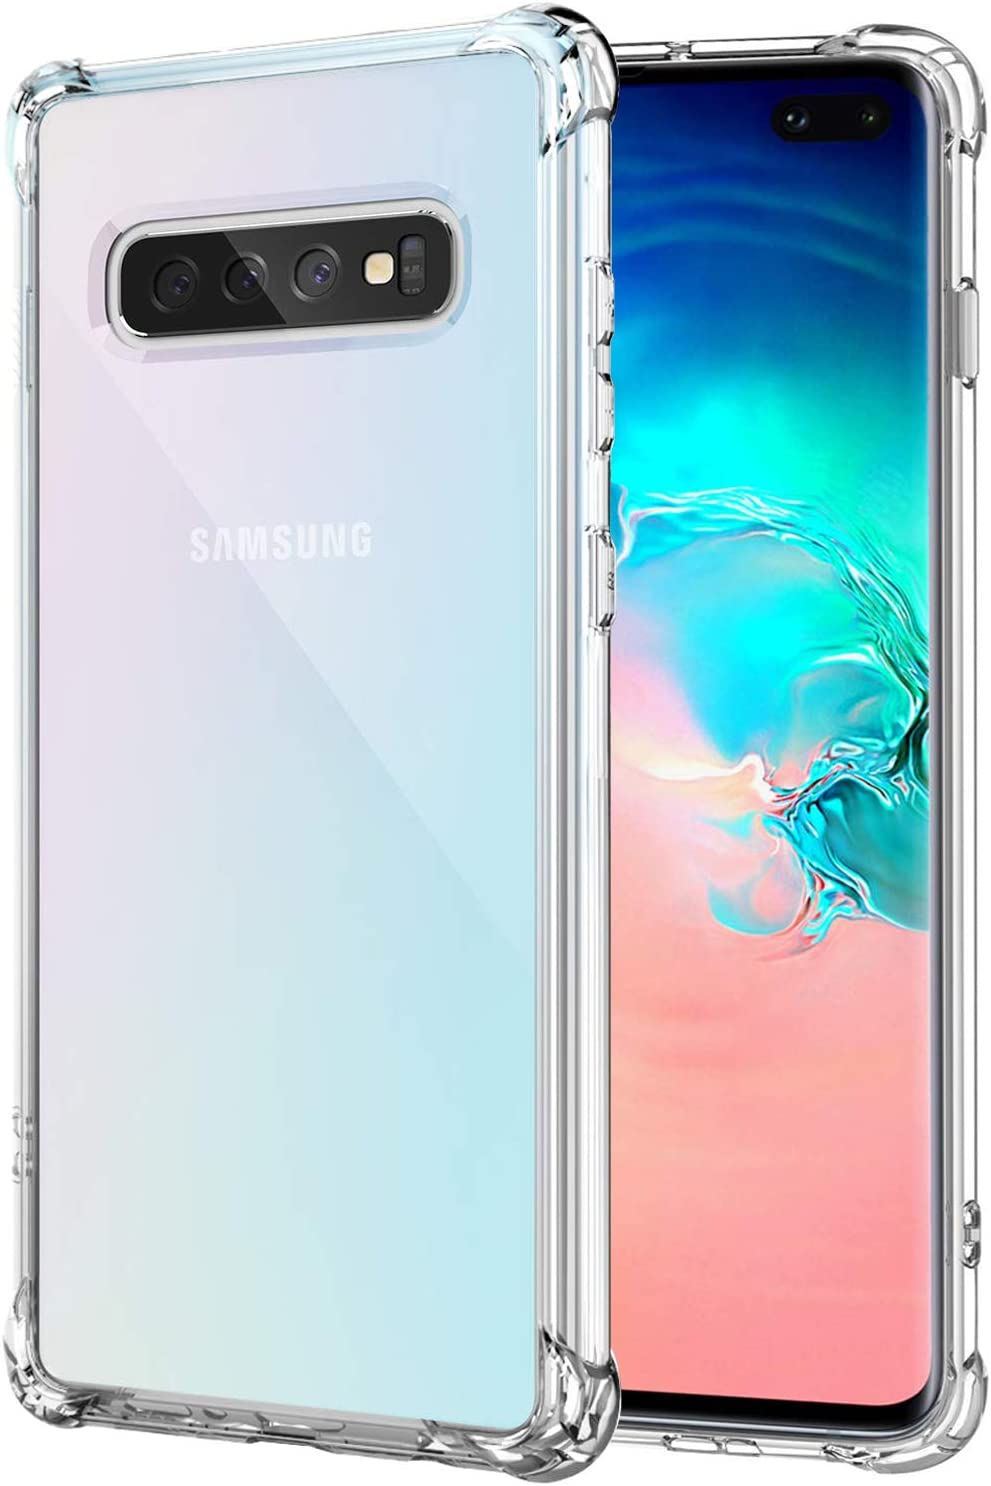 Galaxy S10 Plus Case Ultra Credence Crystal Clear Prote discount Shockproof Bumper